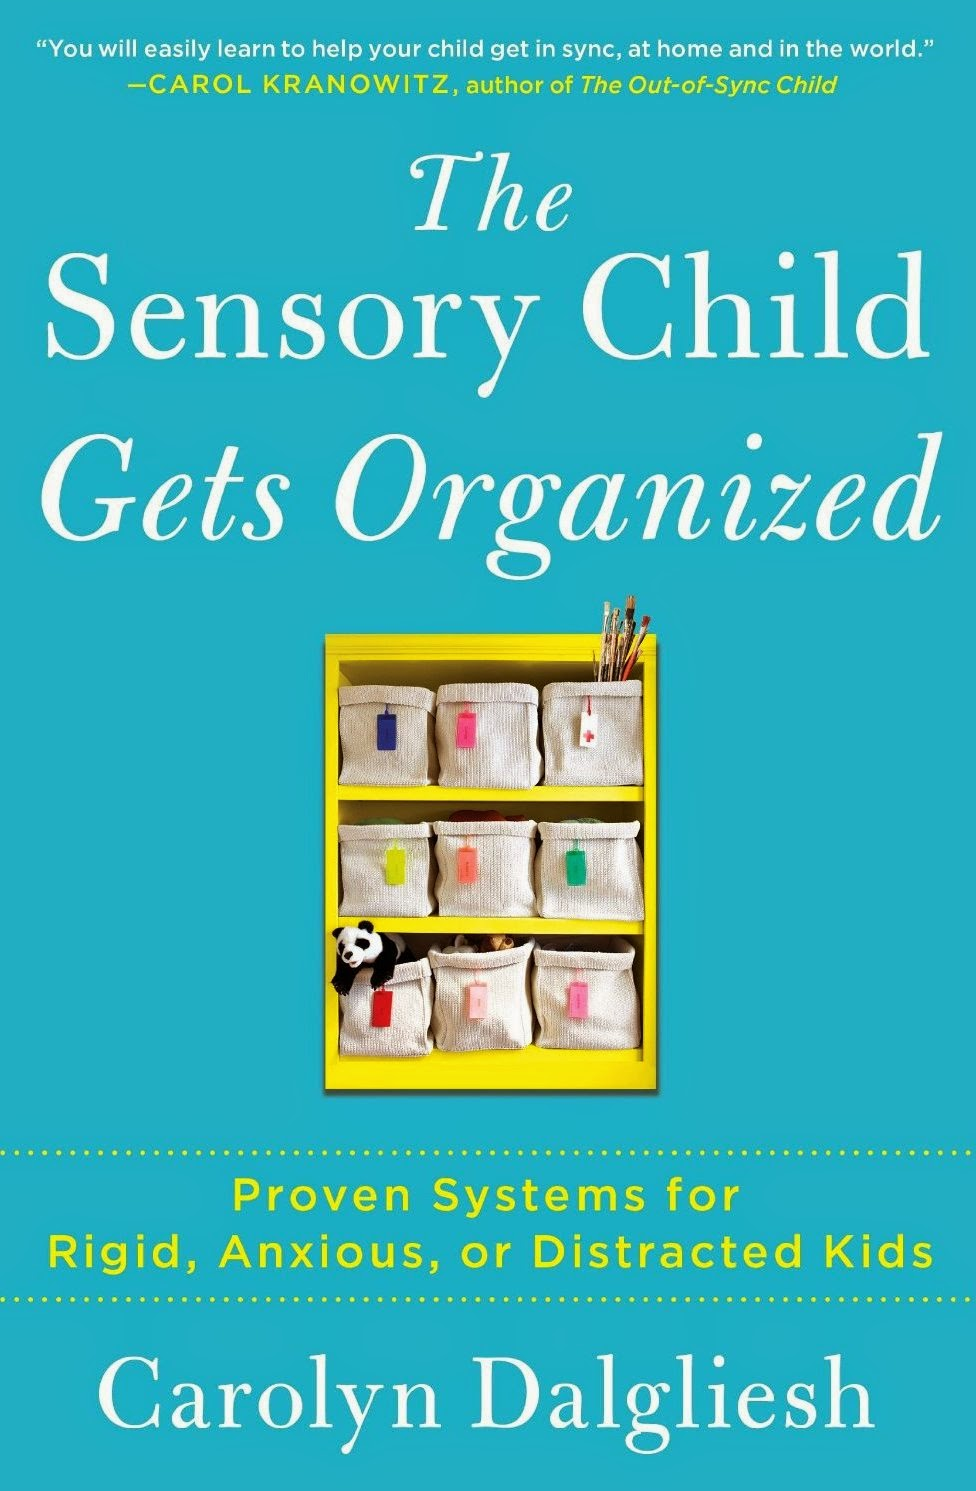 "Book cover: ""The Sensory Child Gets Organized, Proven Systems for Rigid, Anxious, or Distracted Kids"" by Carolyn Dalgliesh. Against a blue background, a child's possessions are arranged in storage containers on a yellow bookshelf."